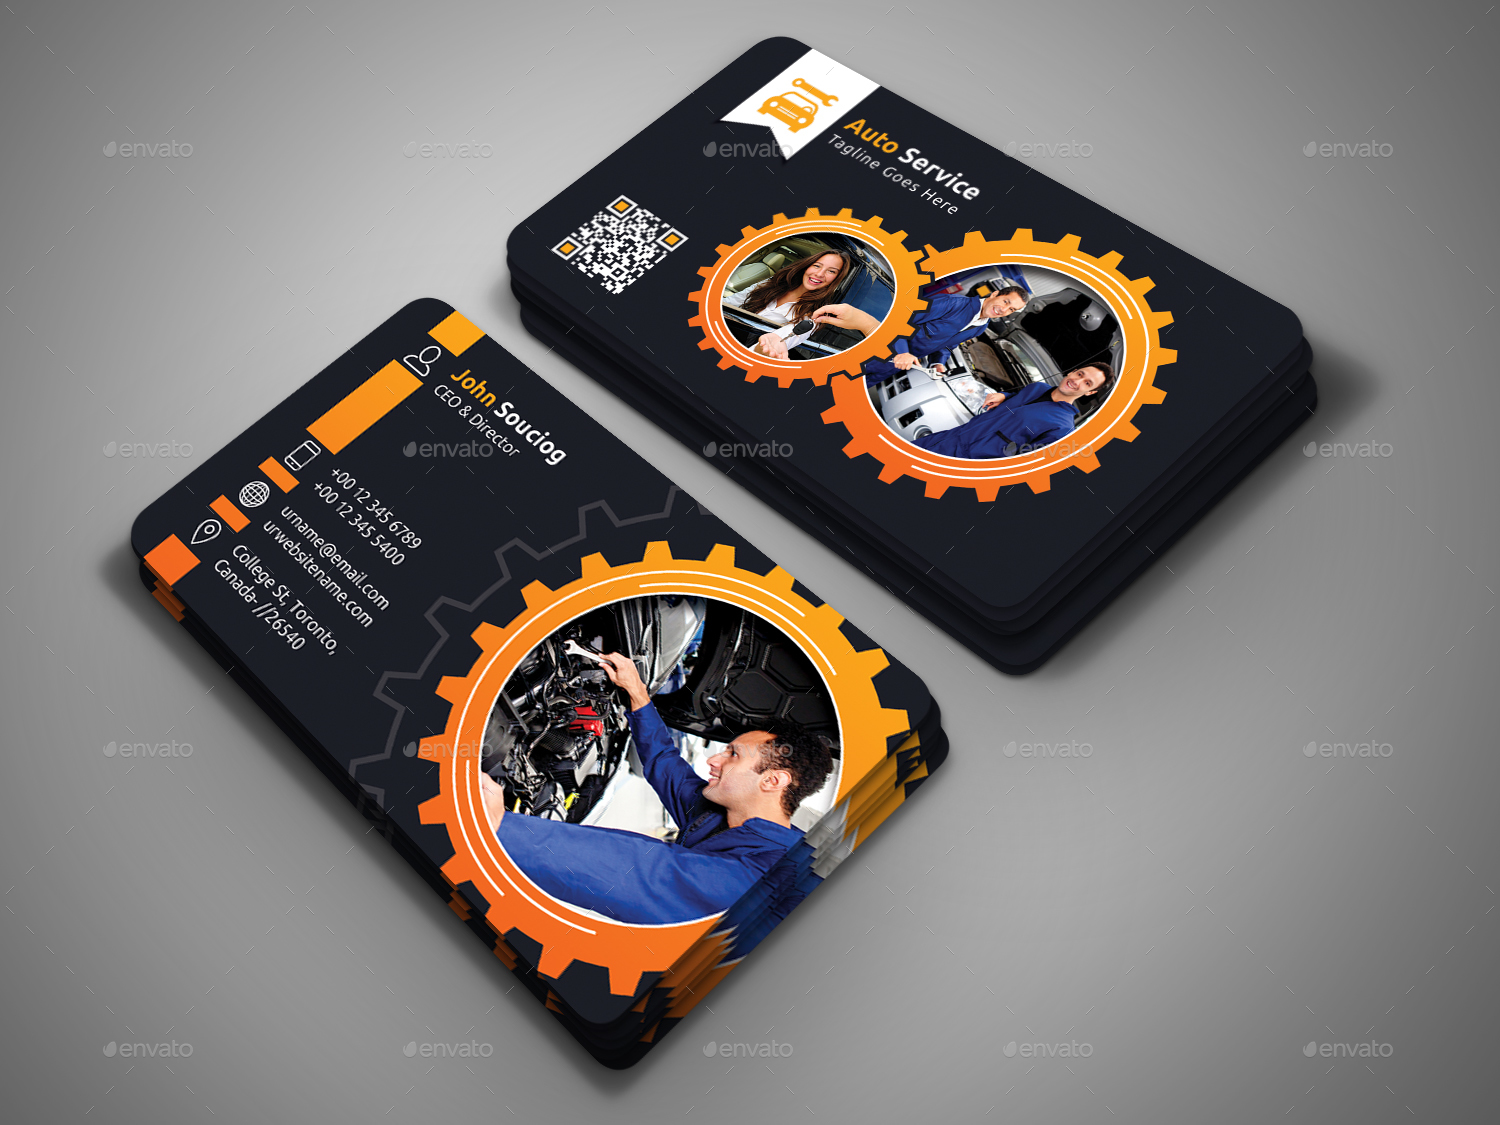 Auto service business card by designsign graphicriver auto service business card industry specific business cards 01 scg 02 reheart Choice Image